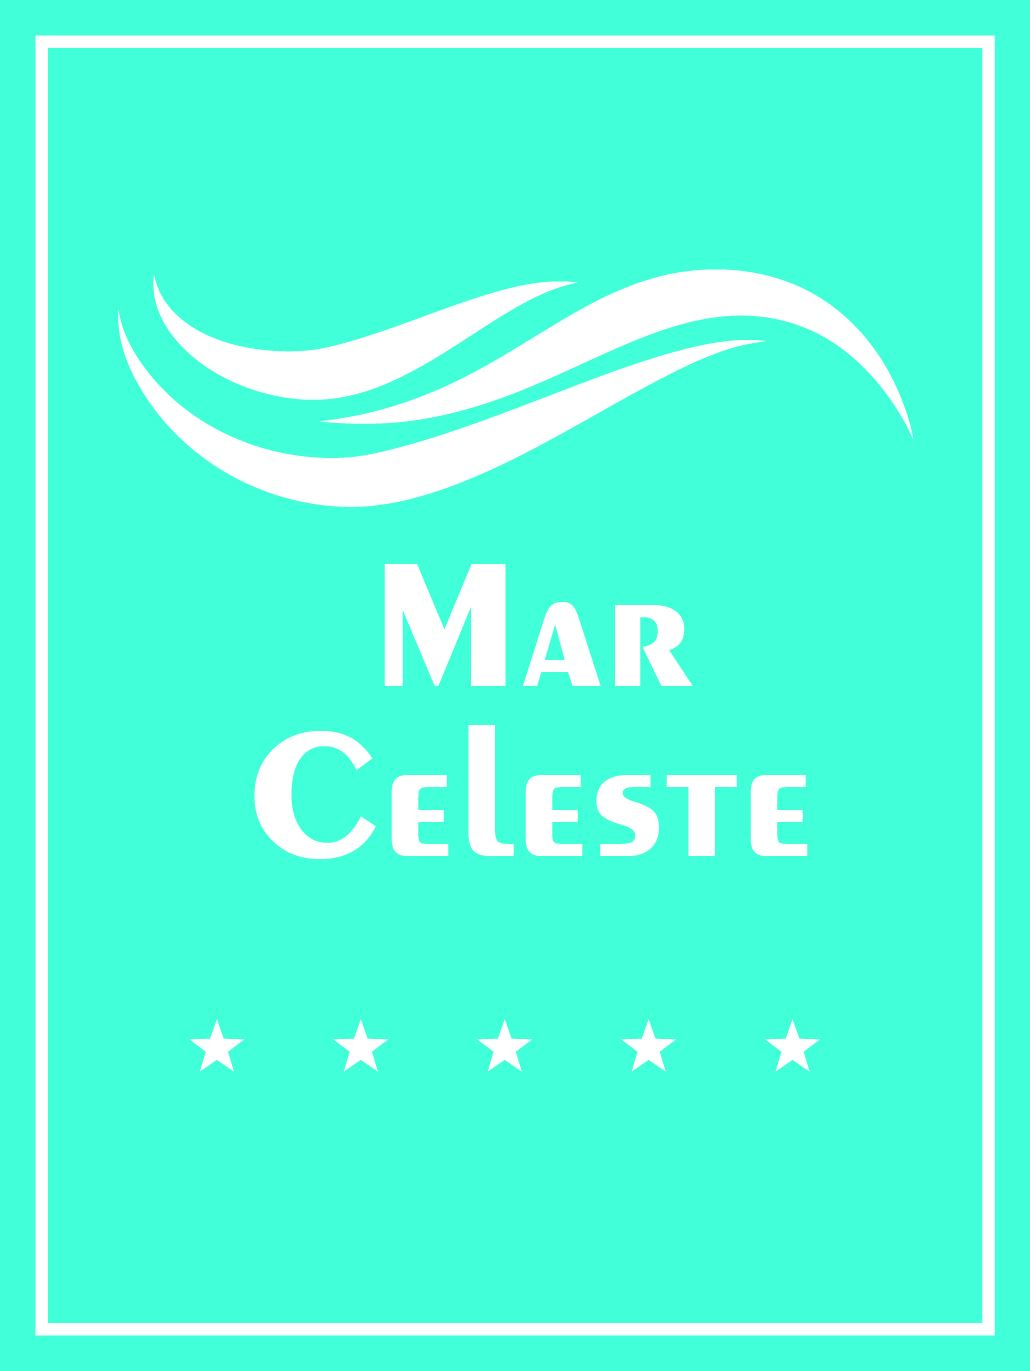 Mar Celeste Boutique